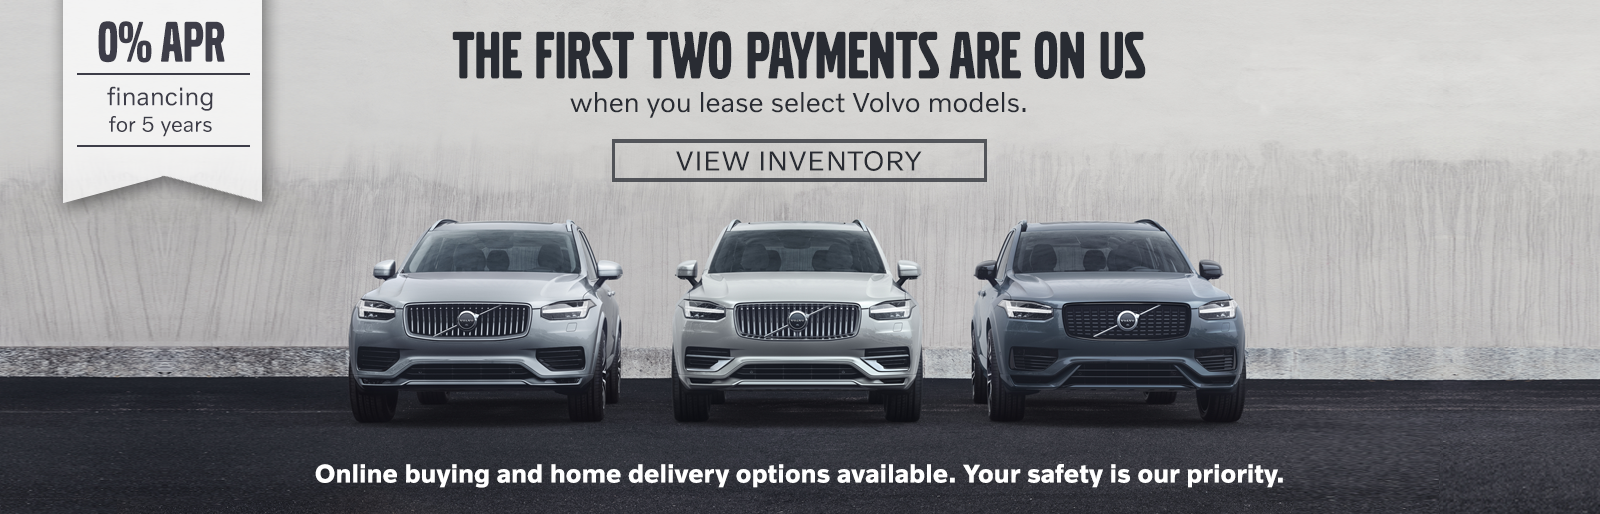 Autobahn Volvo Fort Worth | First 2 Payments Are On Us